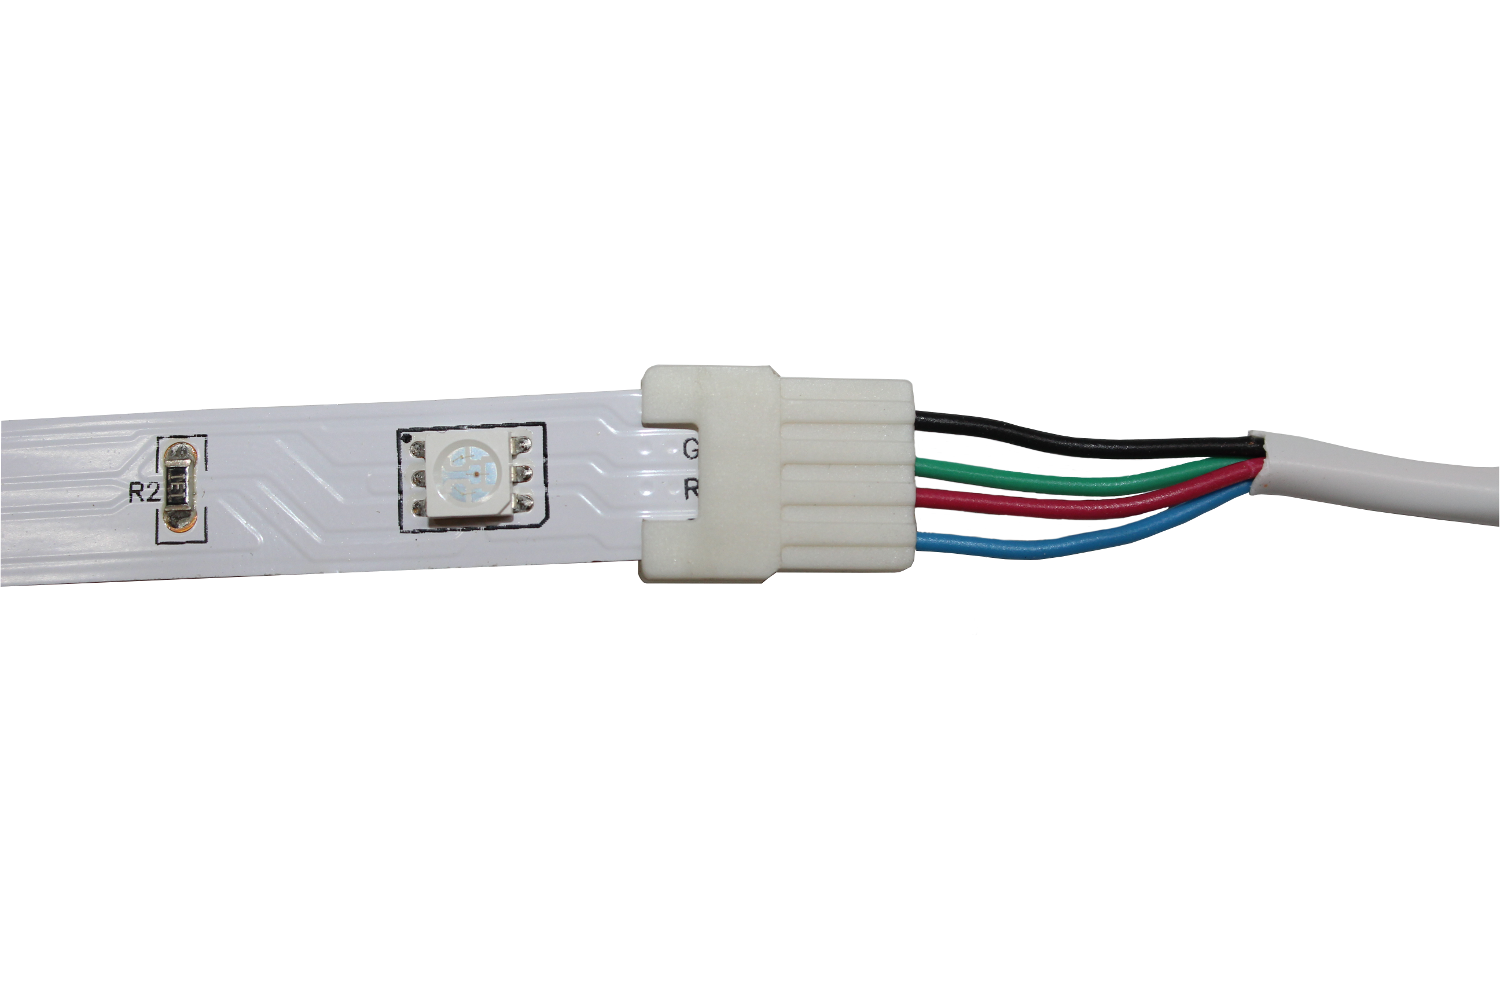 RGB new connector